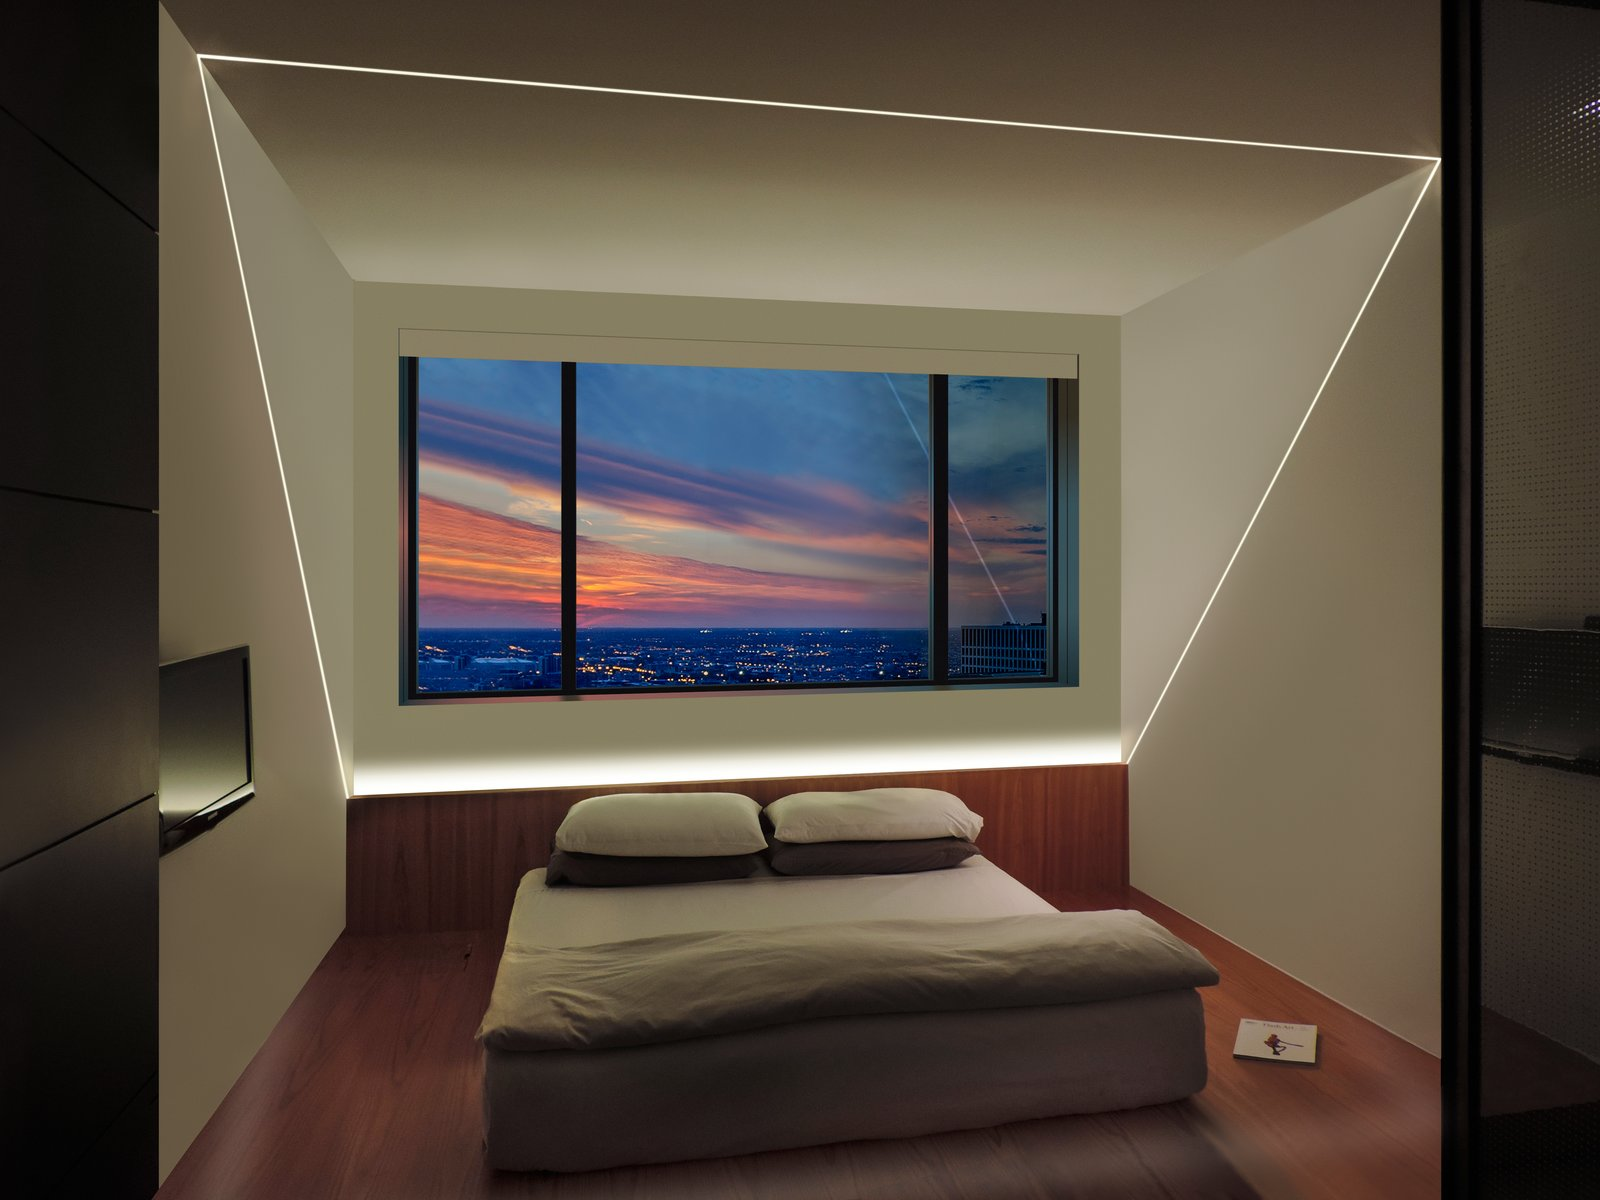 TruLine LED lighting is the centerpiece of this bedroom design 60+ Modern Lighting Solutions by Dwell